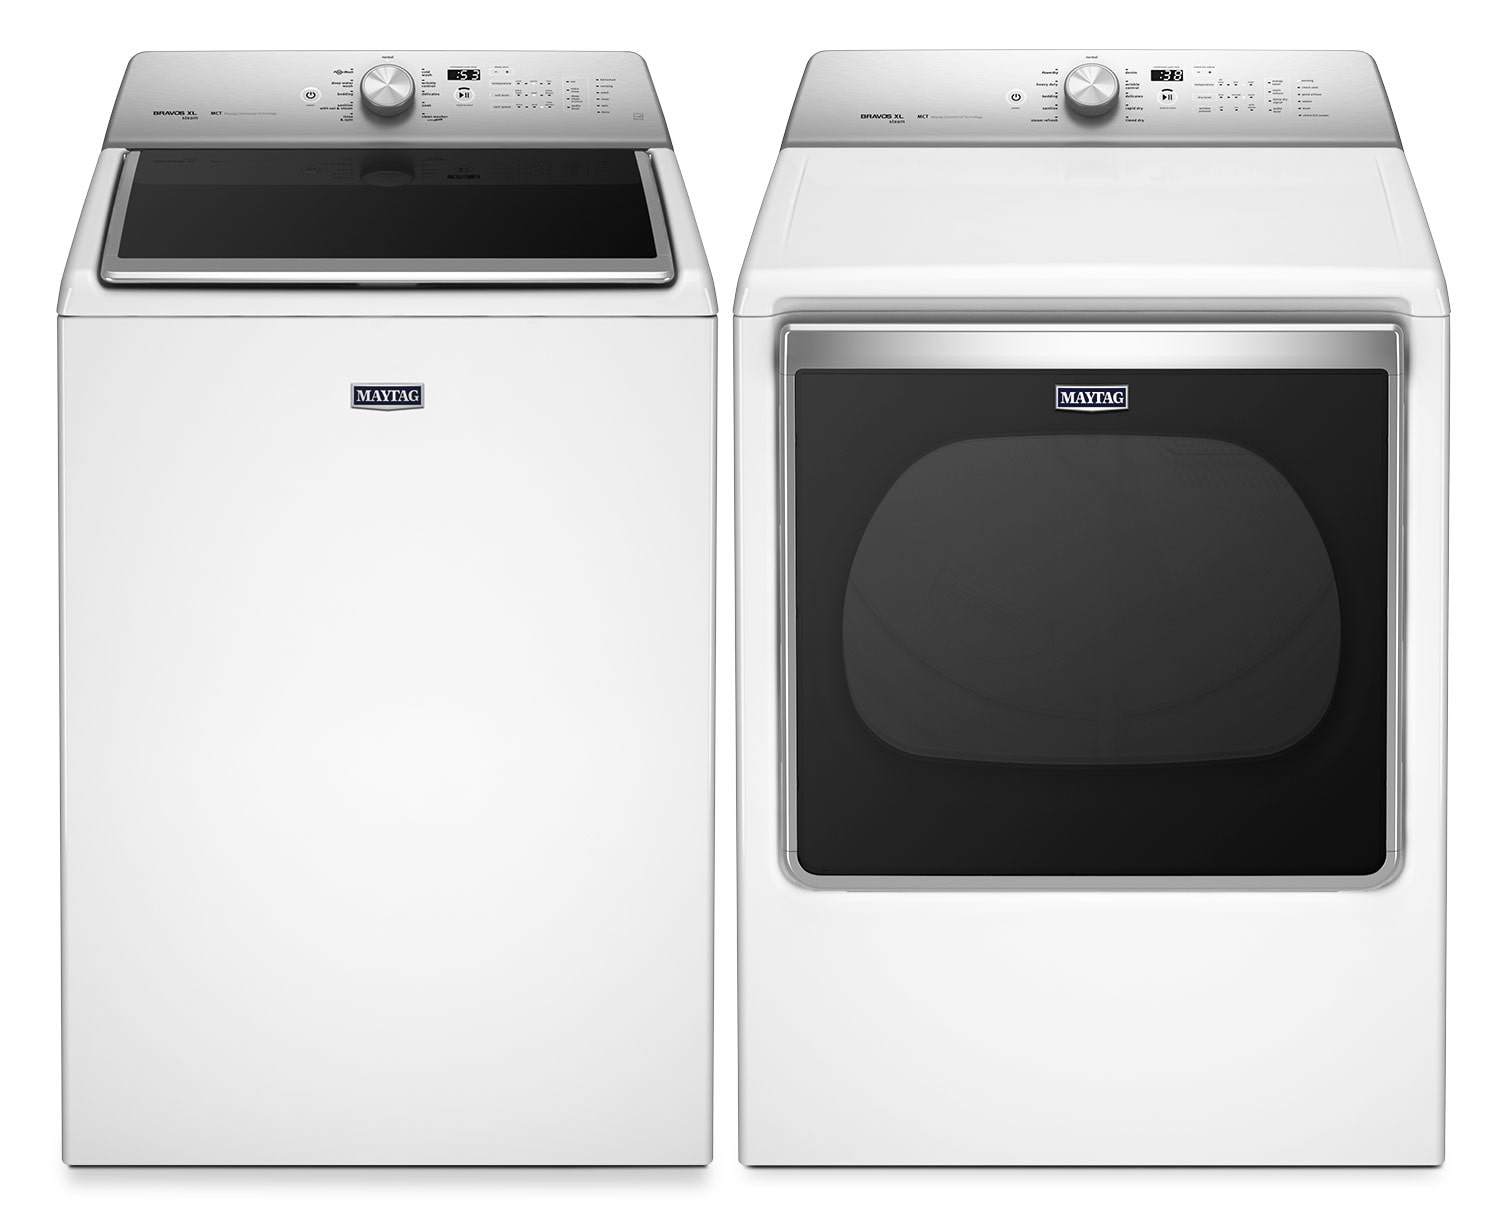 The Maytag MVWB855W Laundry Collection